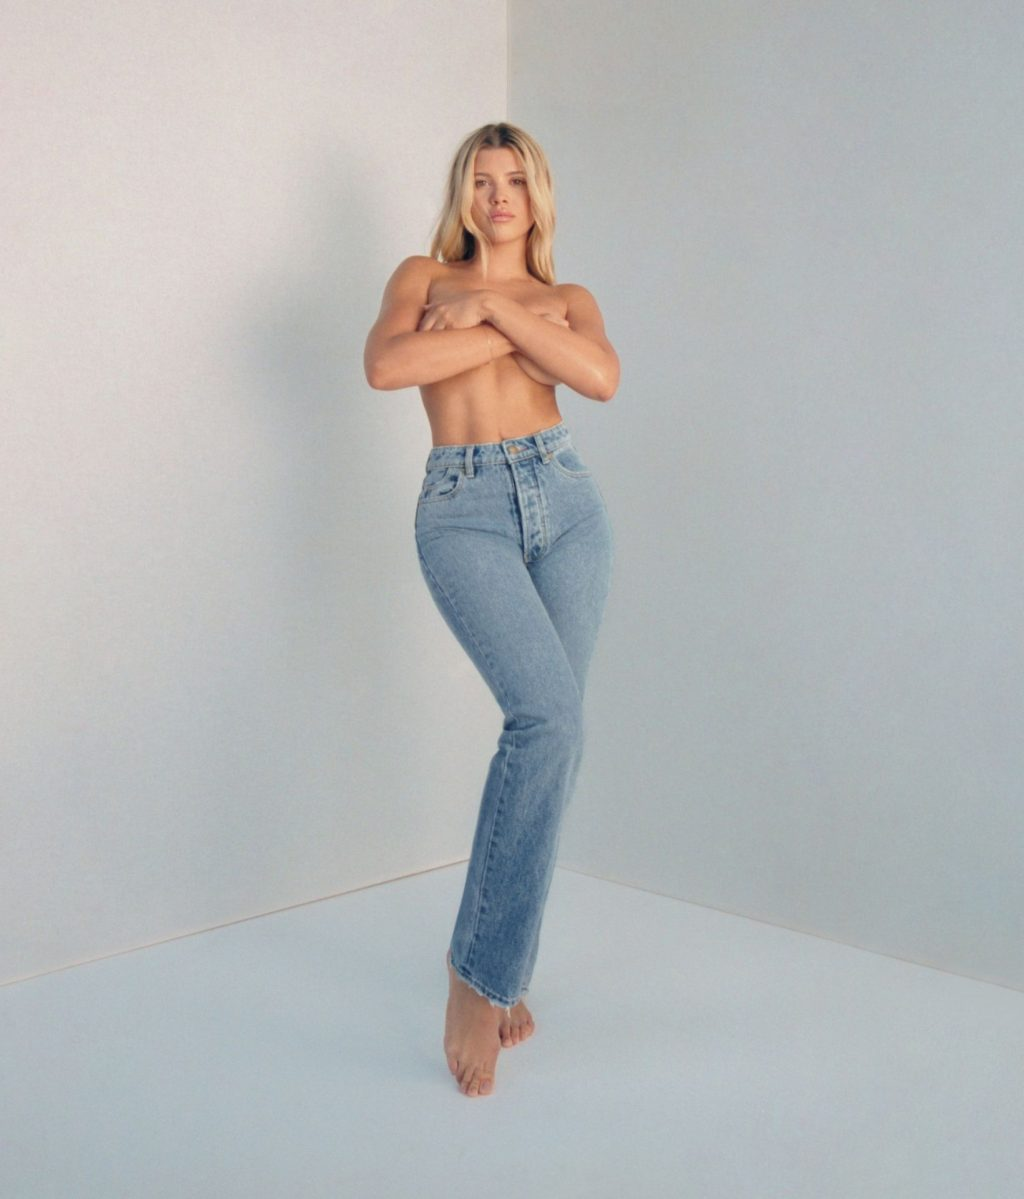 Sofia Richie Goes Topless in a Sexy New Campaign for Rolla's (24 Photos)